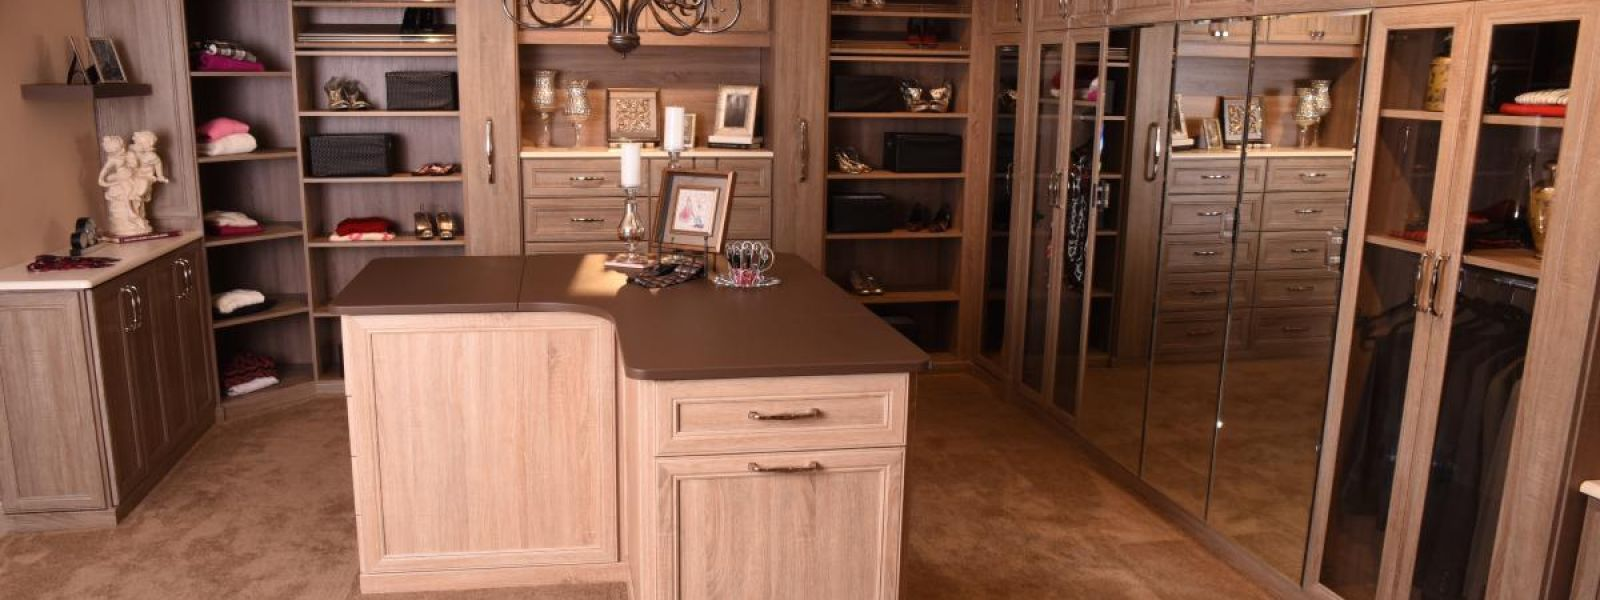 Murphy Beds Can Transform Your Room